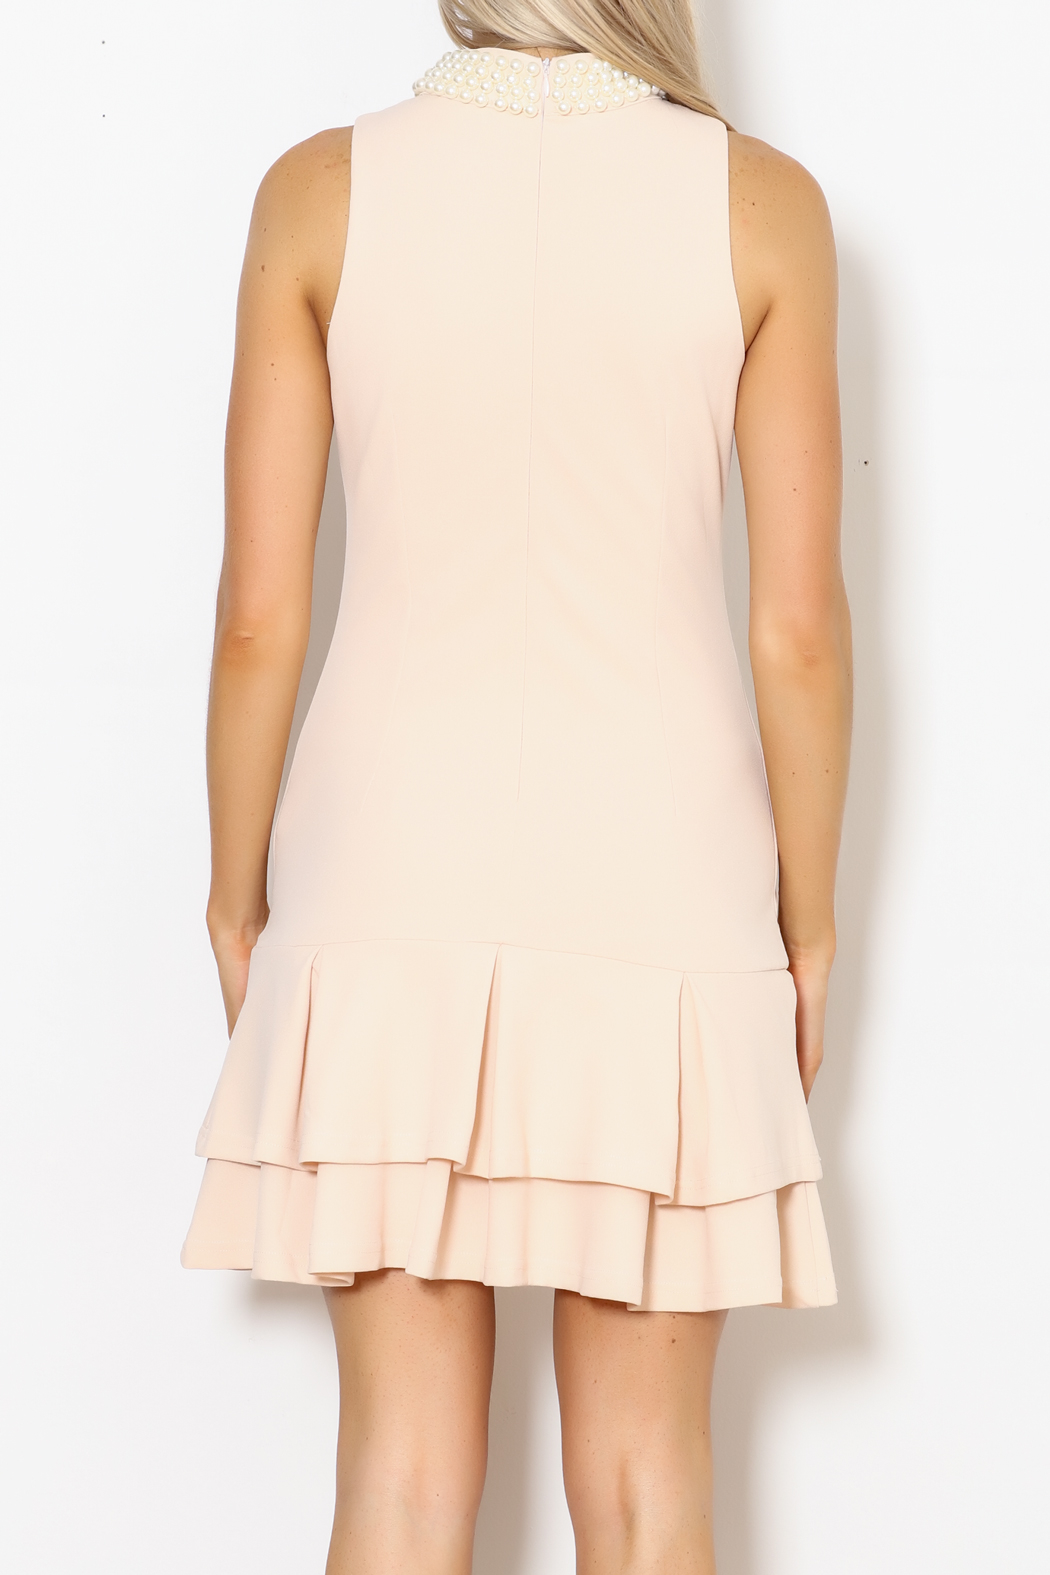 Ina Pearl Collar Dress - Back Cropped Image